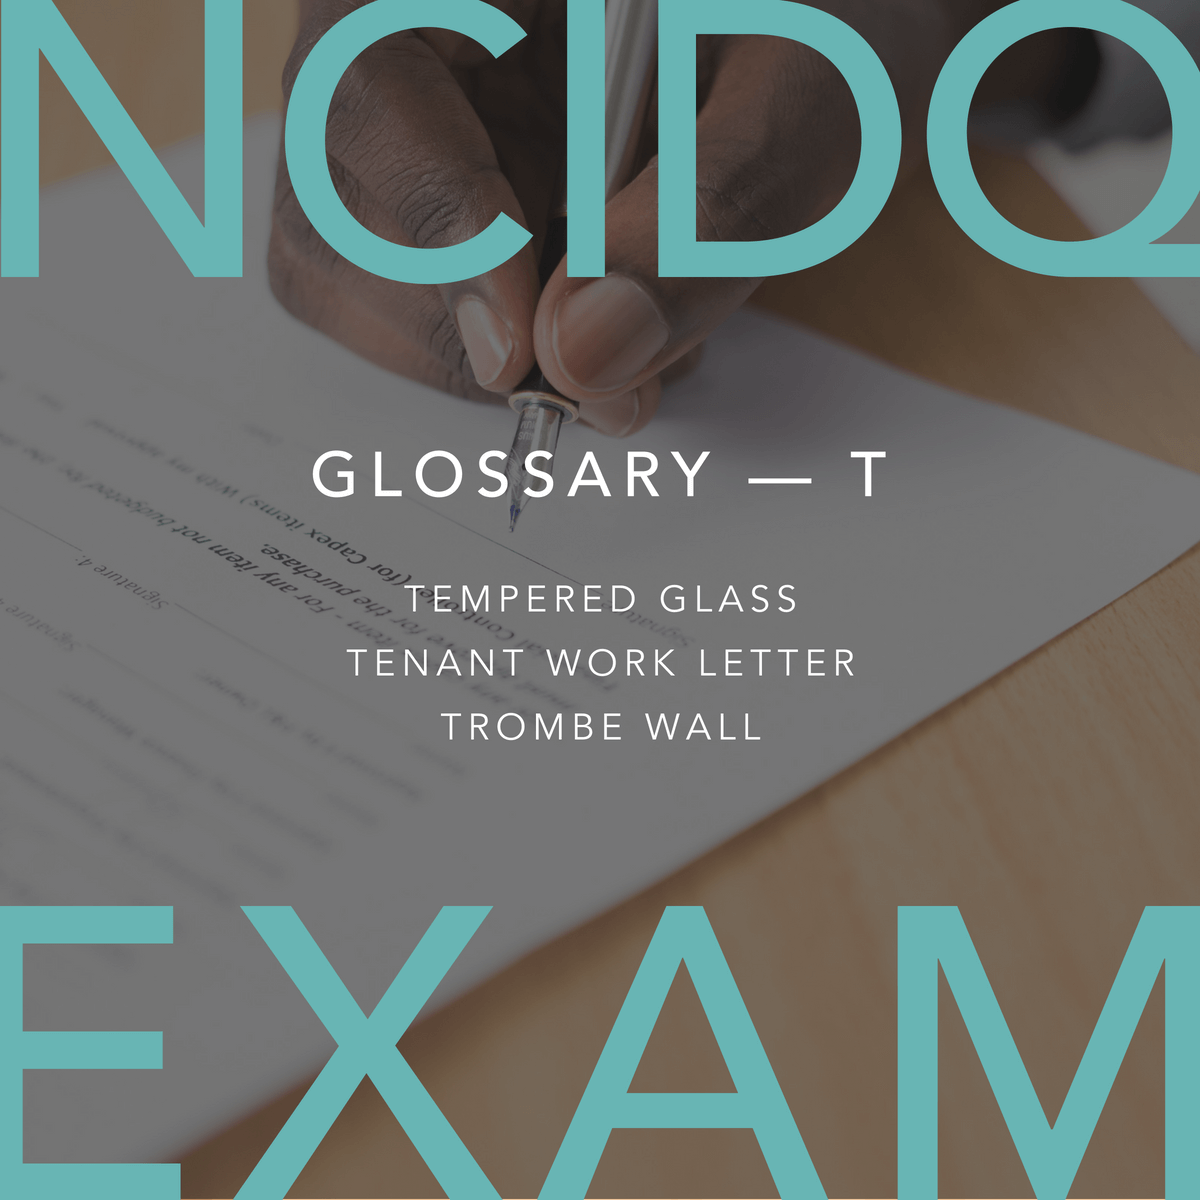 ATrombe wall isusedto reduce theuse of a building'sheating and cooling systems throughpassive solar design. #NCIDQ